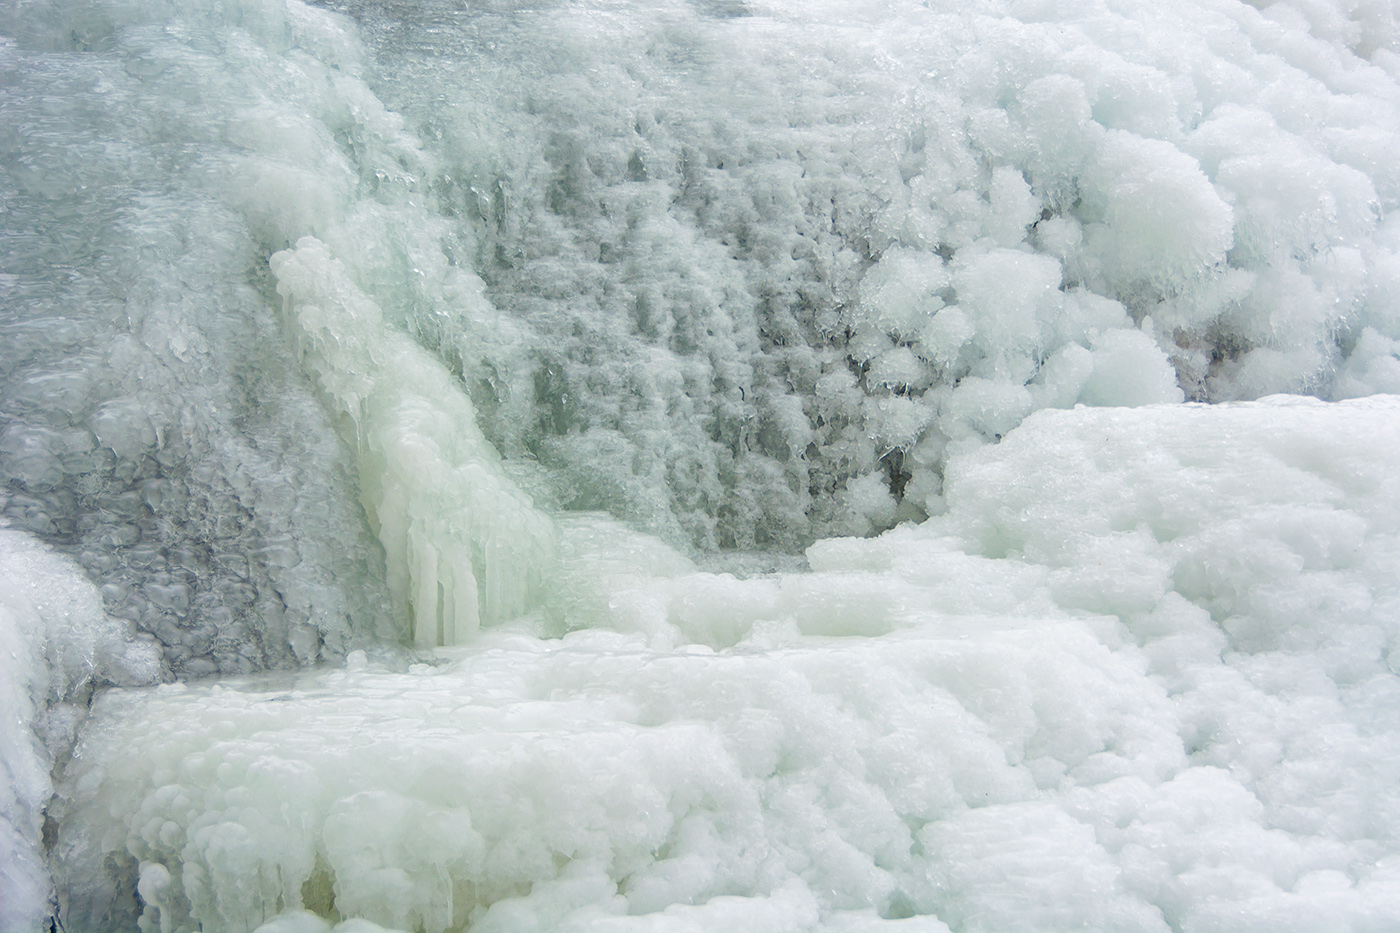 Much of the waterfall was covered in a thick layer of ice.